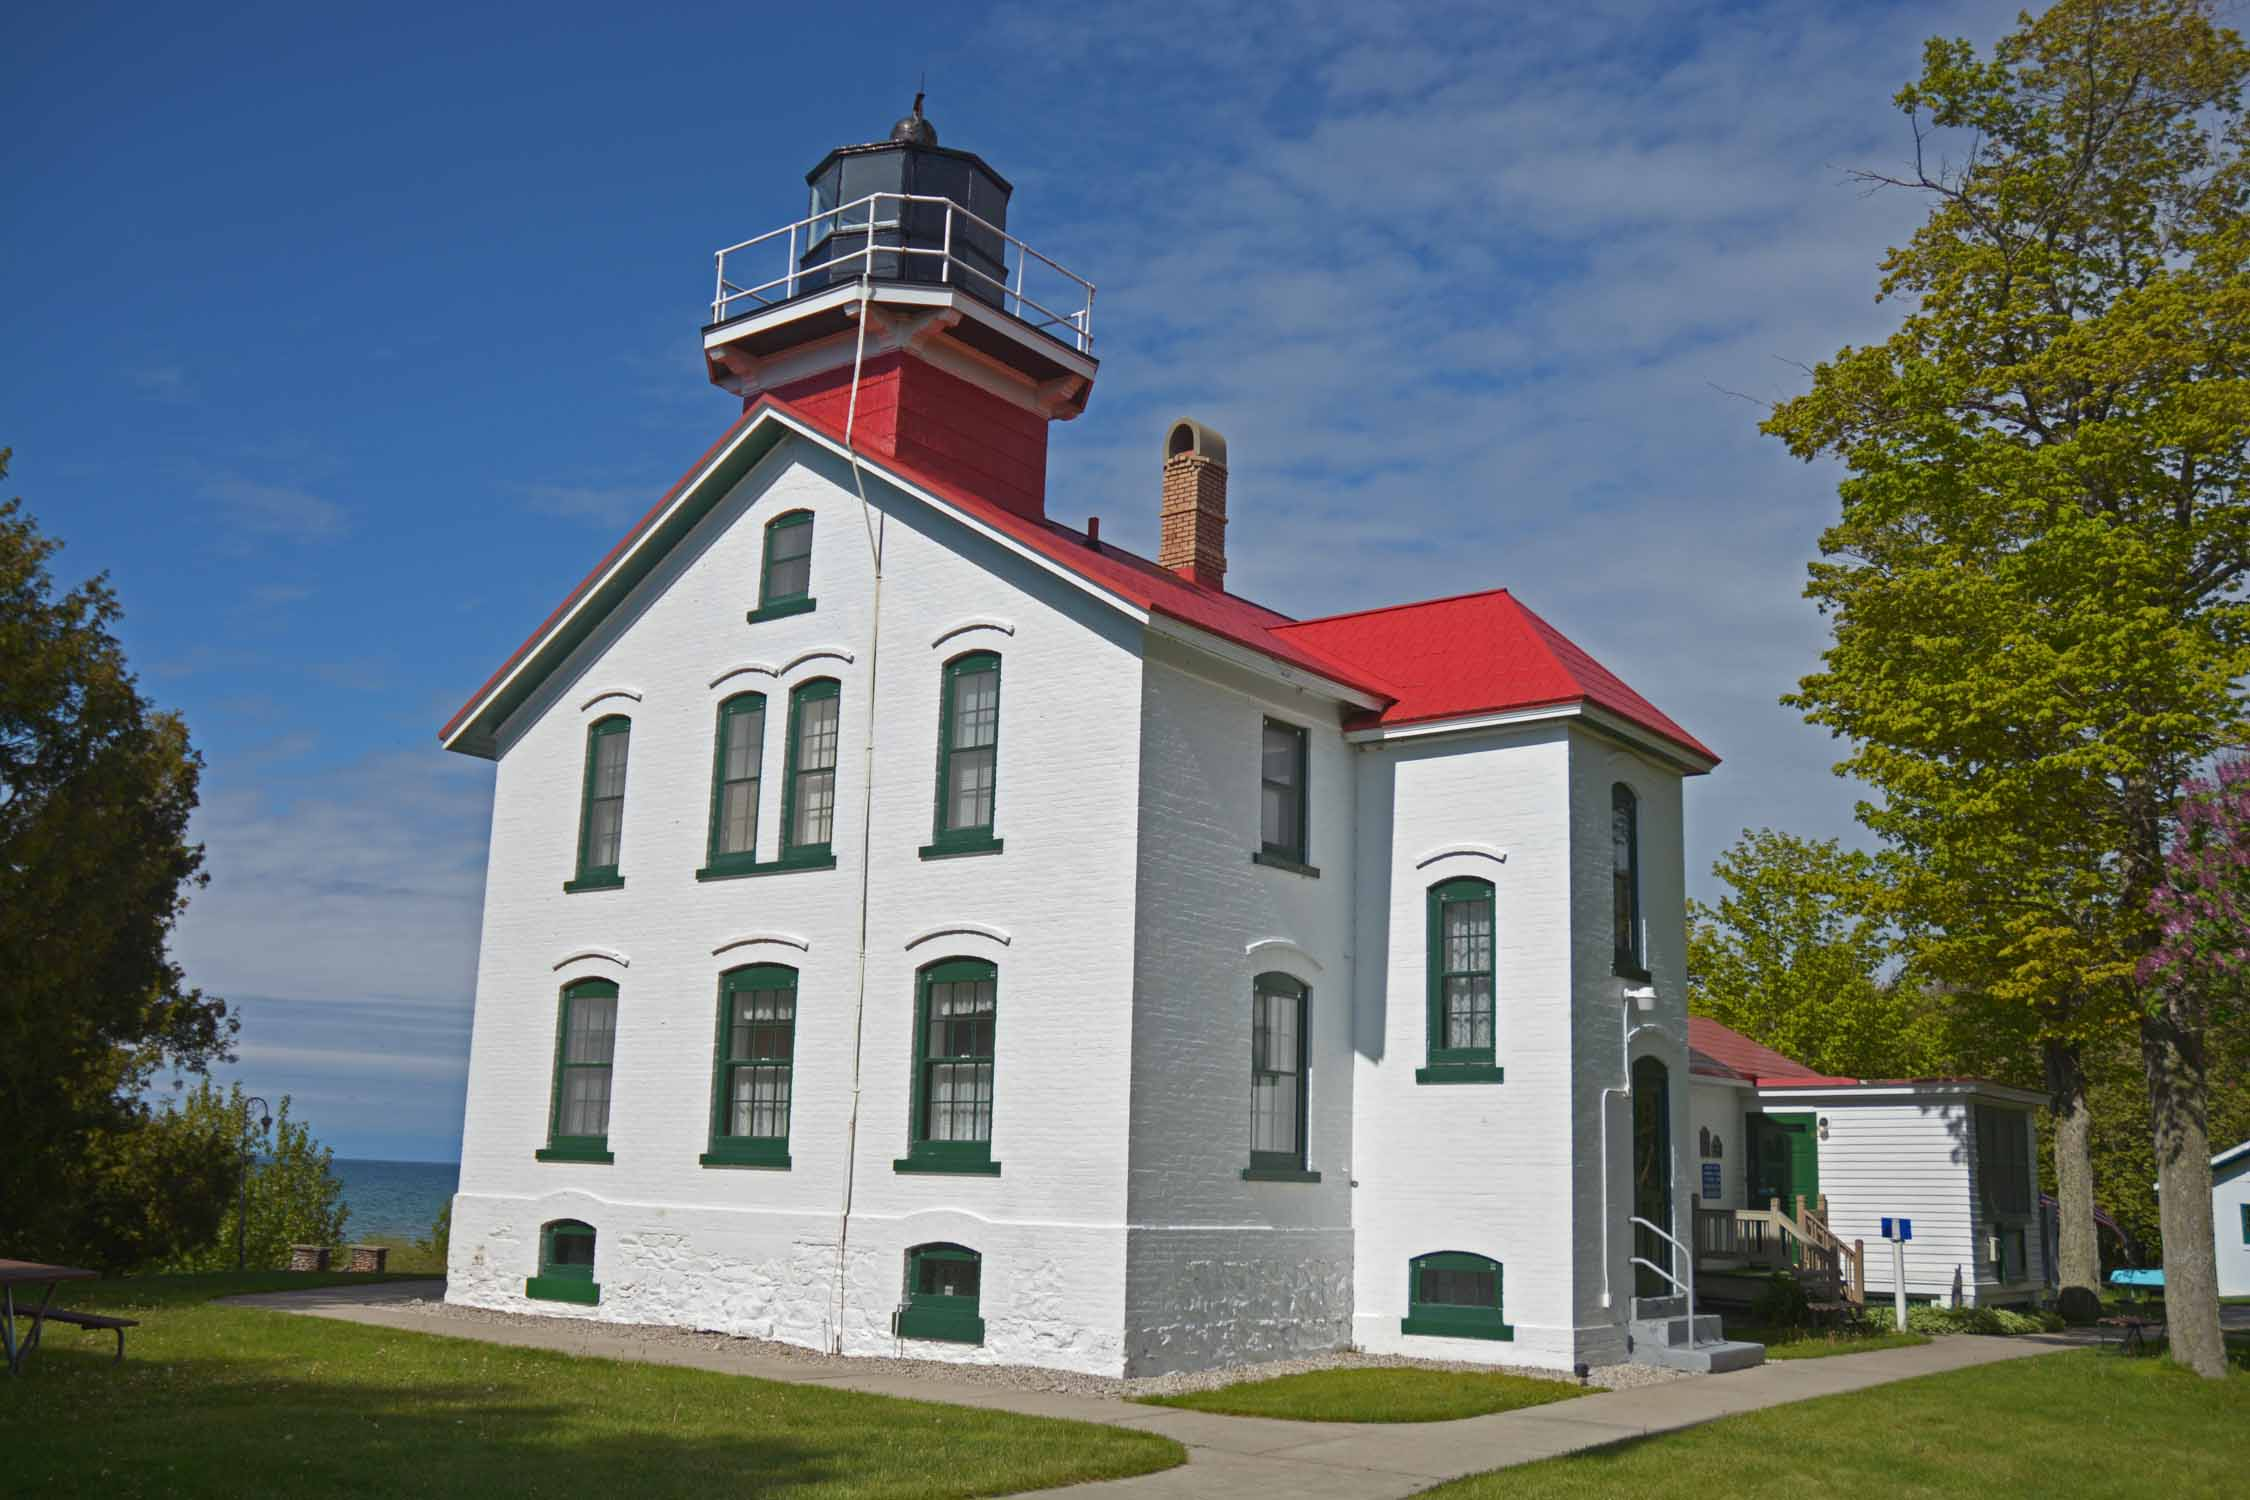 It was good to get out to the Northport Light house and Leelanau State Park